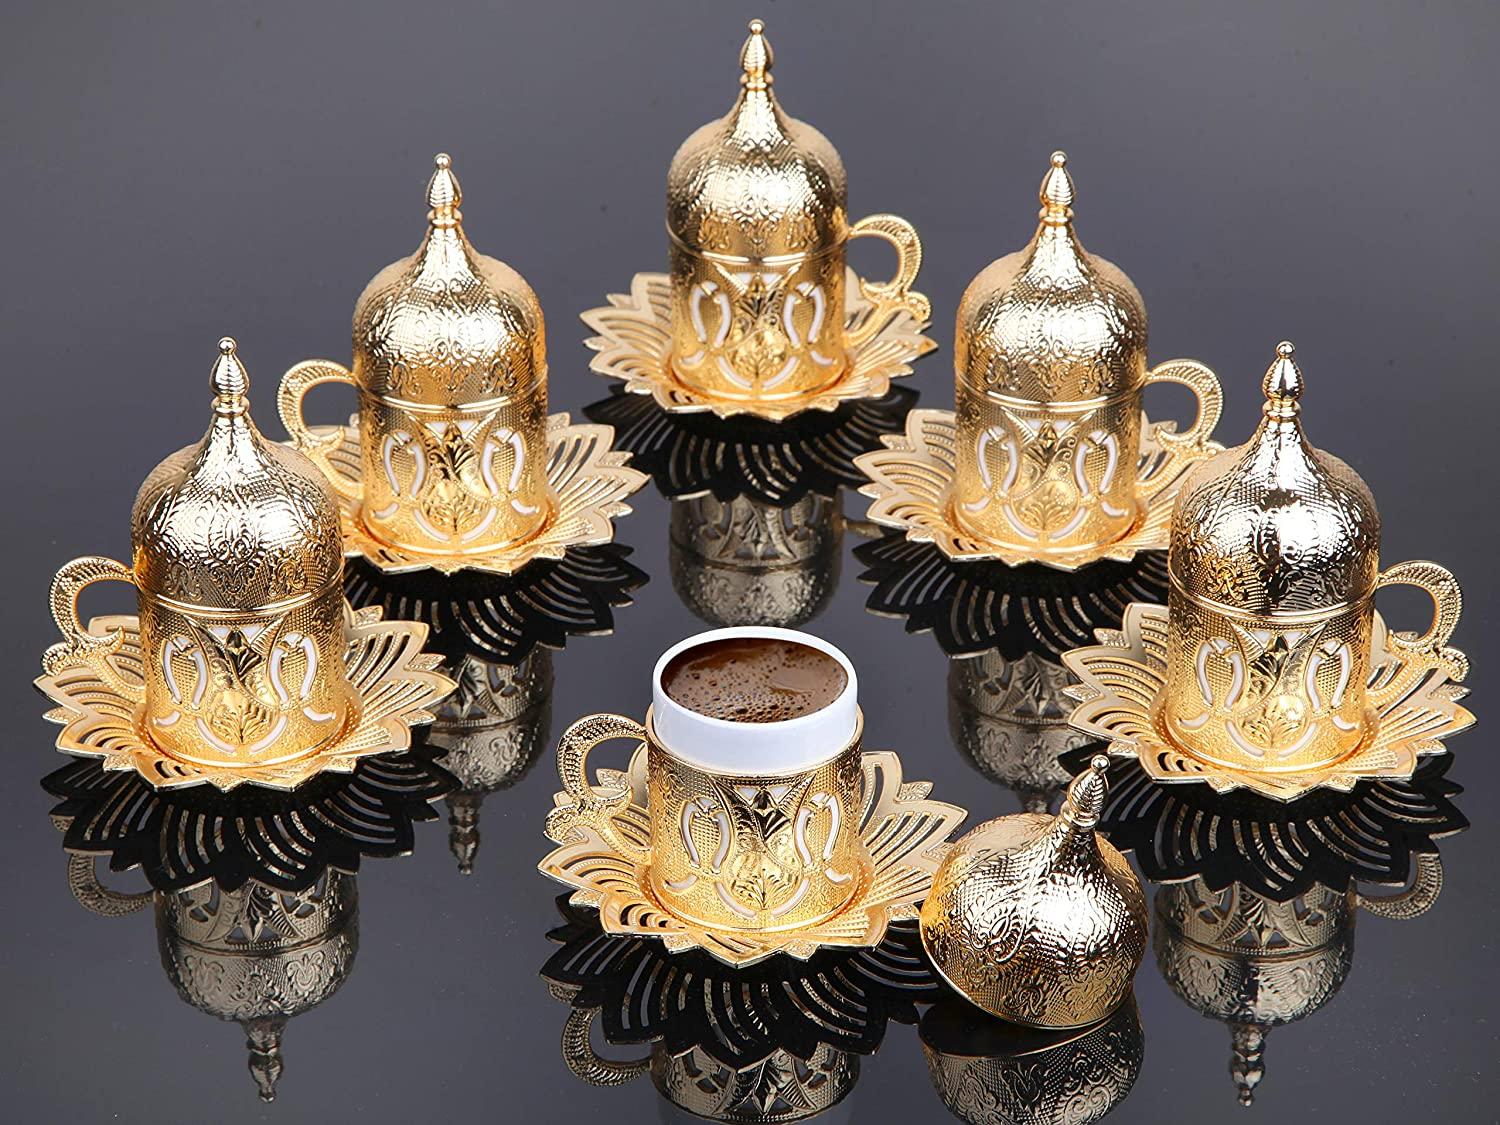 LaModaHome Topics on TV Espresso Manufacturer direct delivery Coffee Cup with Saucer and Tur of Lid 6 Set